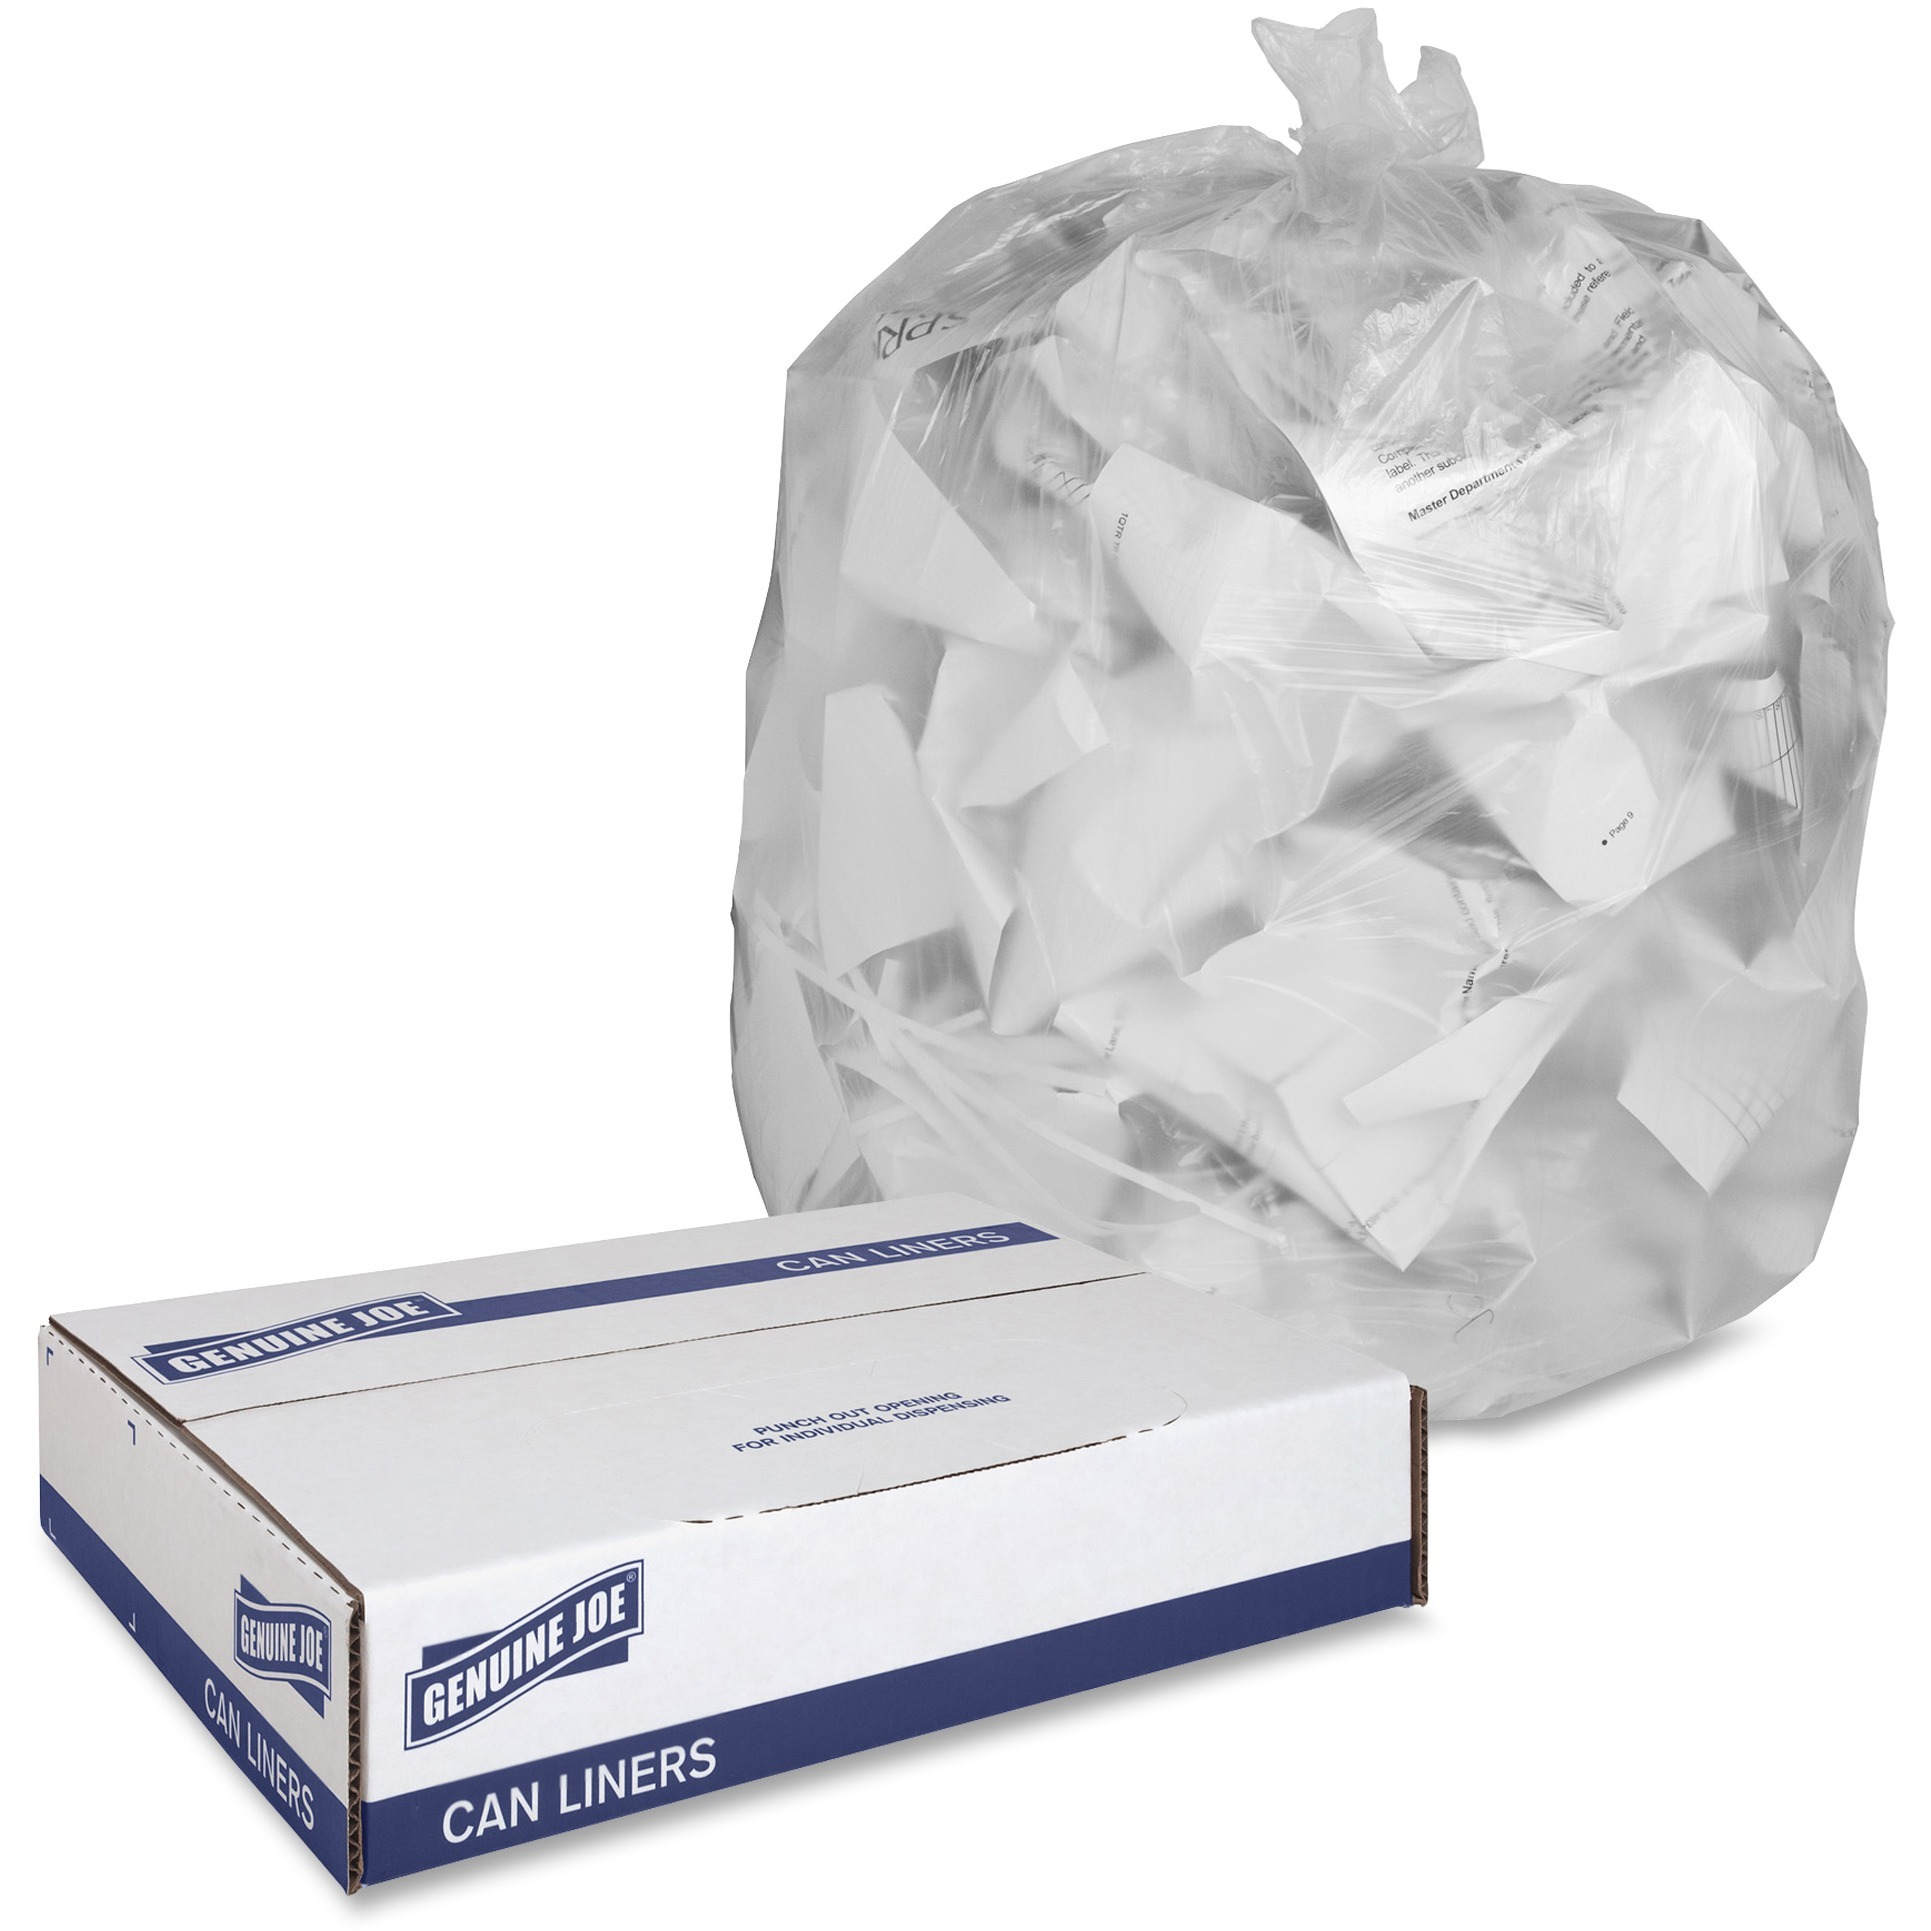 Genuine Joe, GJO70011, Economy High-Density Can Liners, 1000 / Carton, Translucent, 16 gal